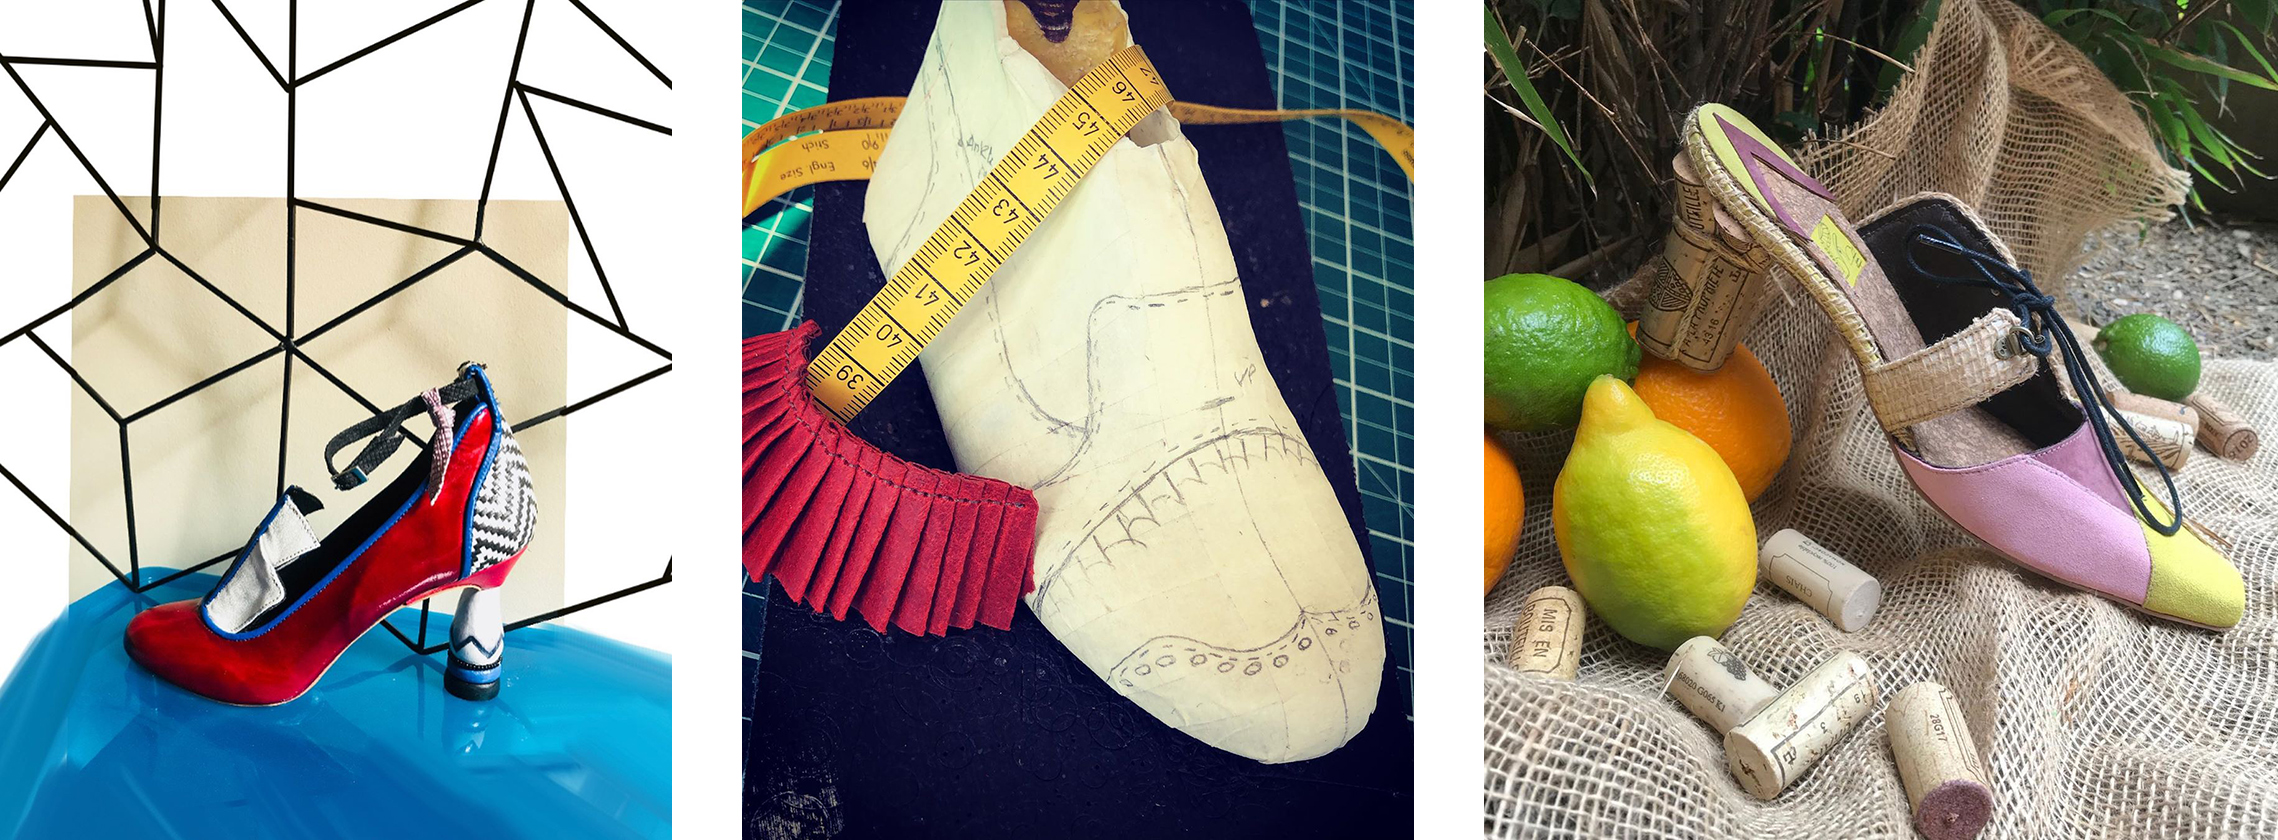 Shoes designed by LCF Cordwainers Footwear student Swann Phelippeau